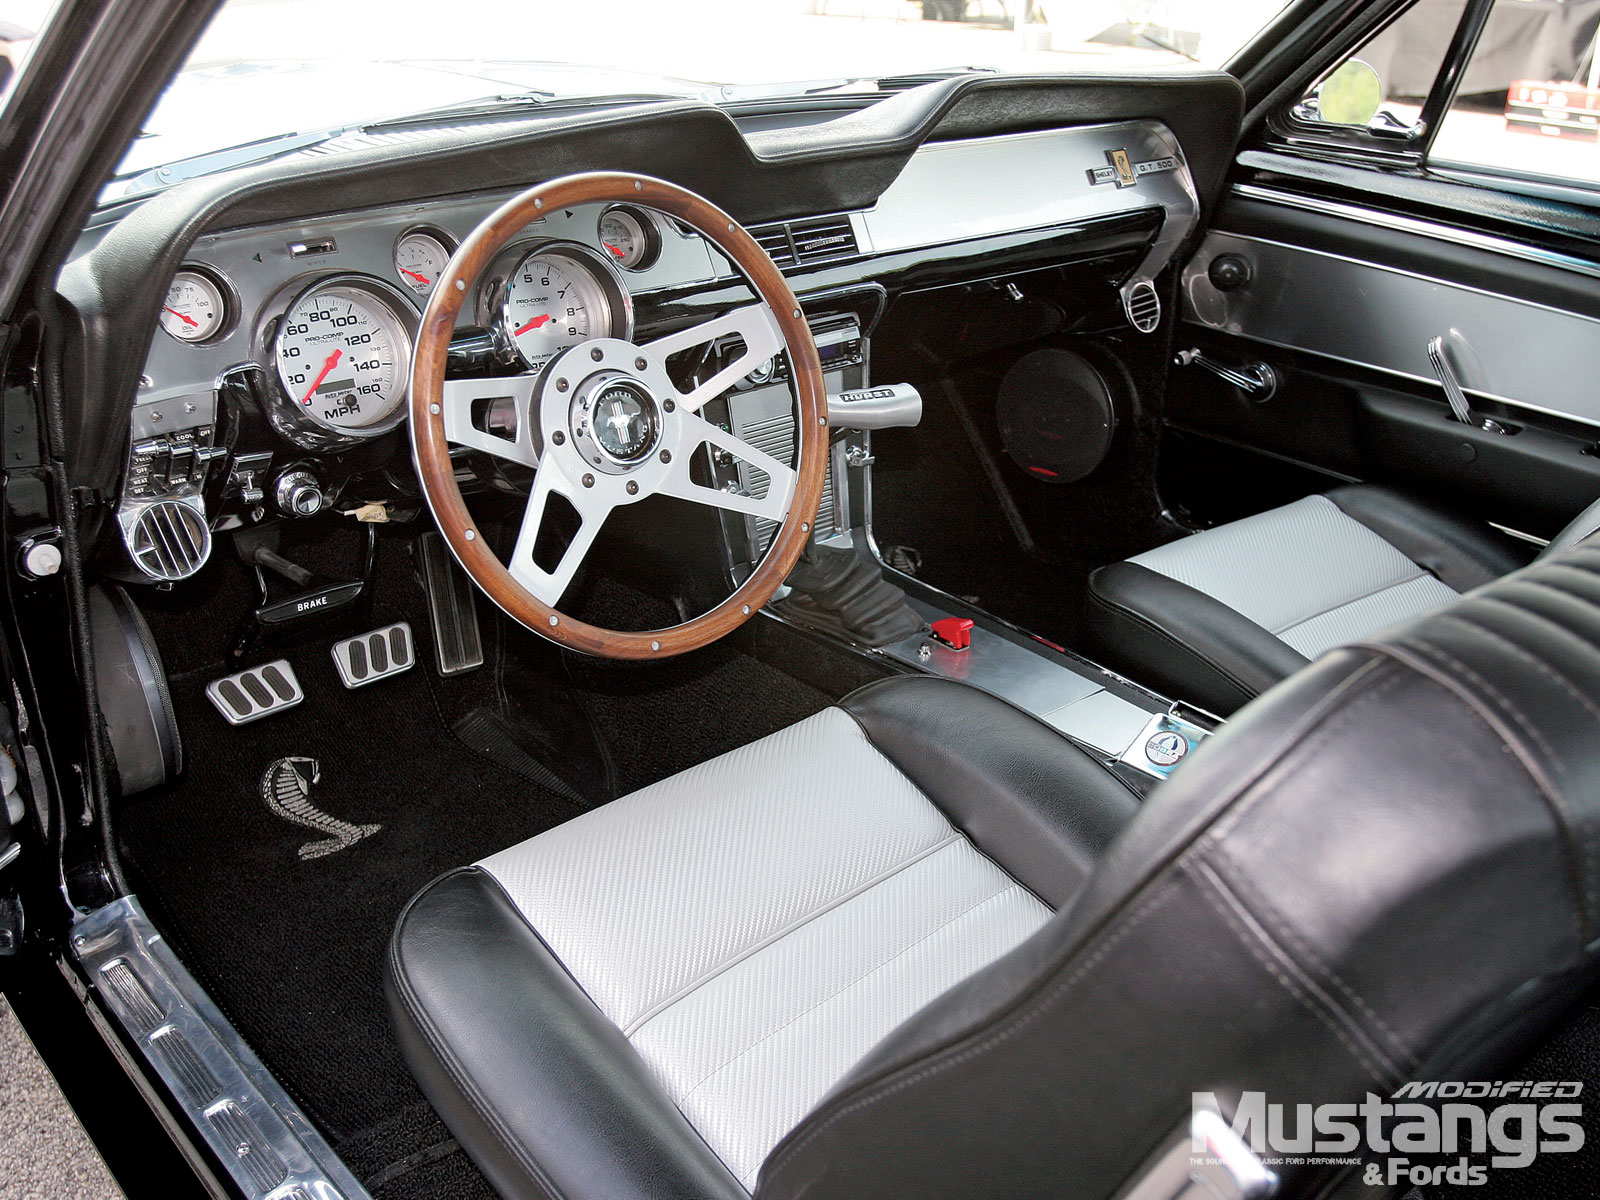 Mdmp 1002 12 1967 shelby gt500 replica interior